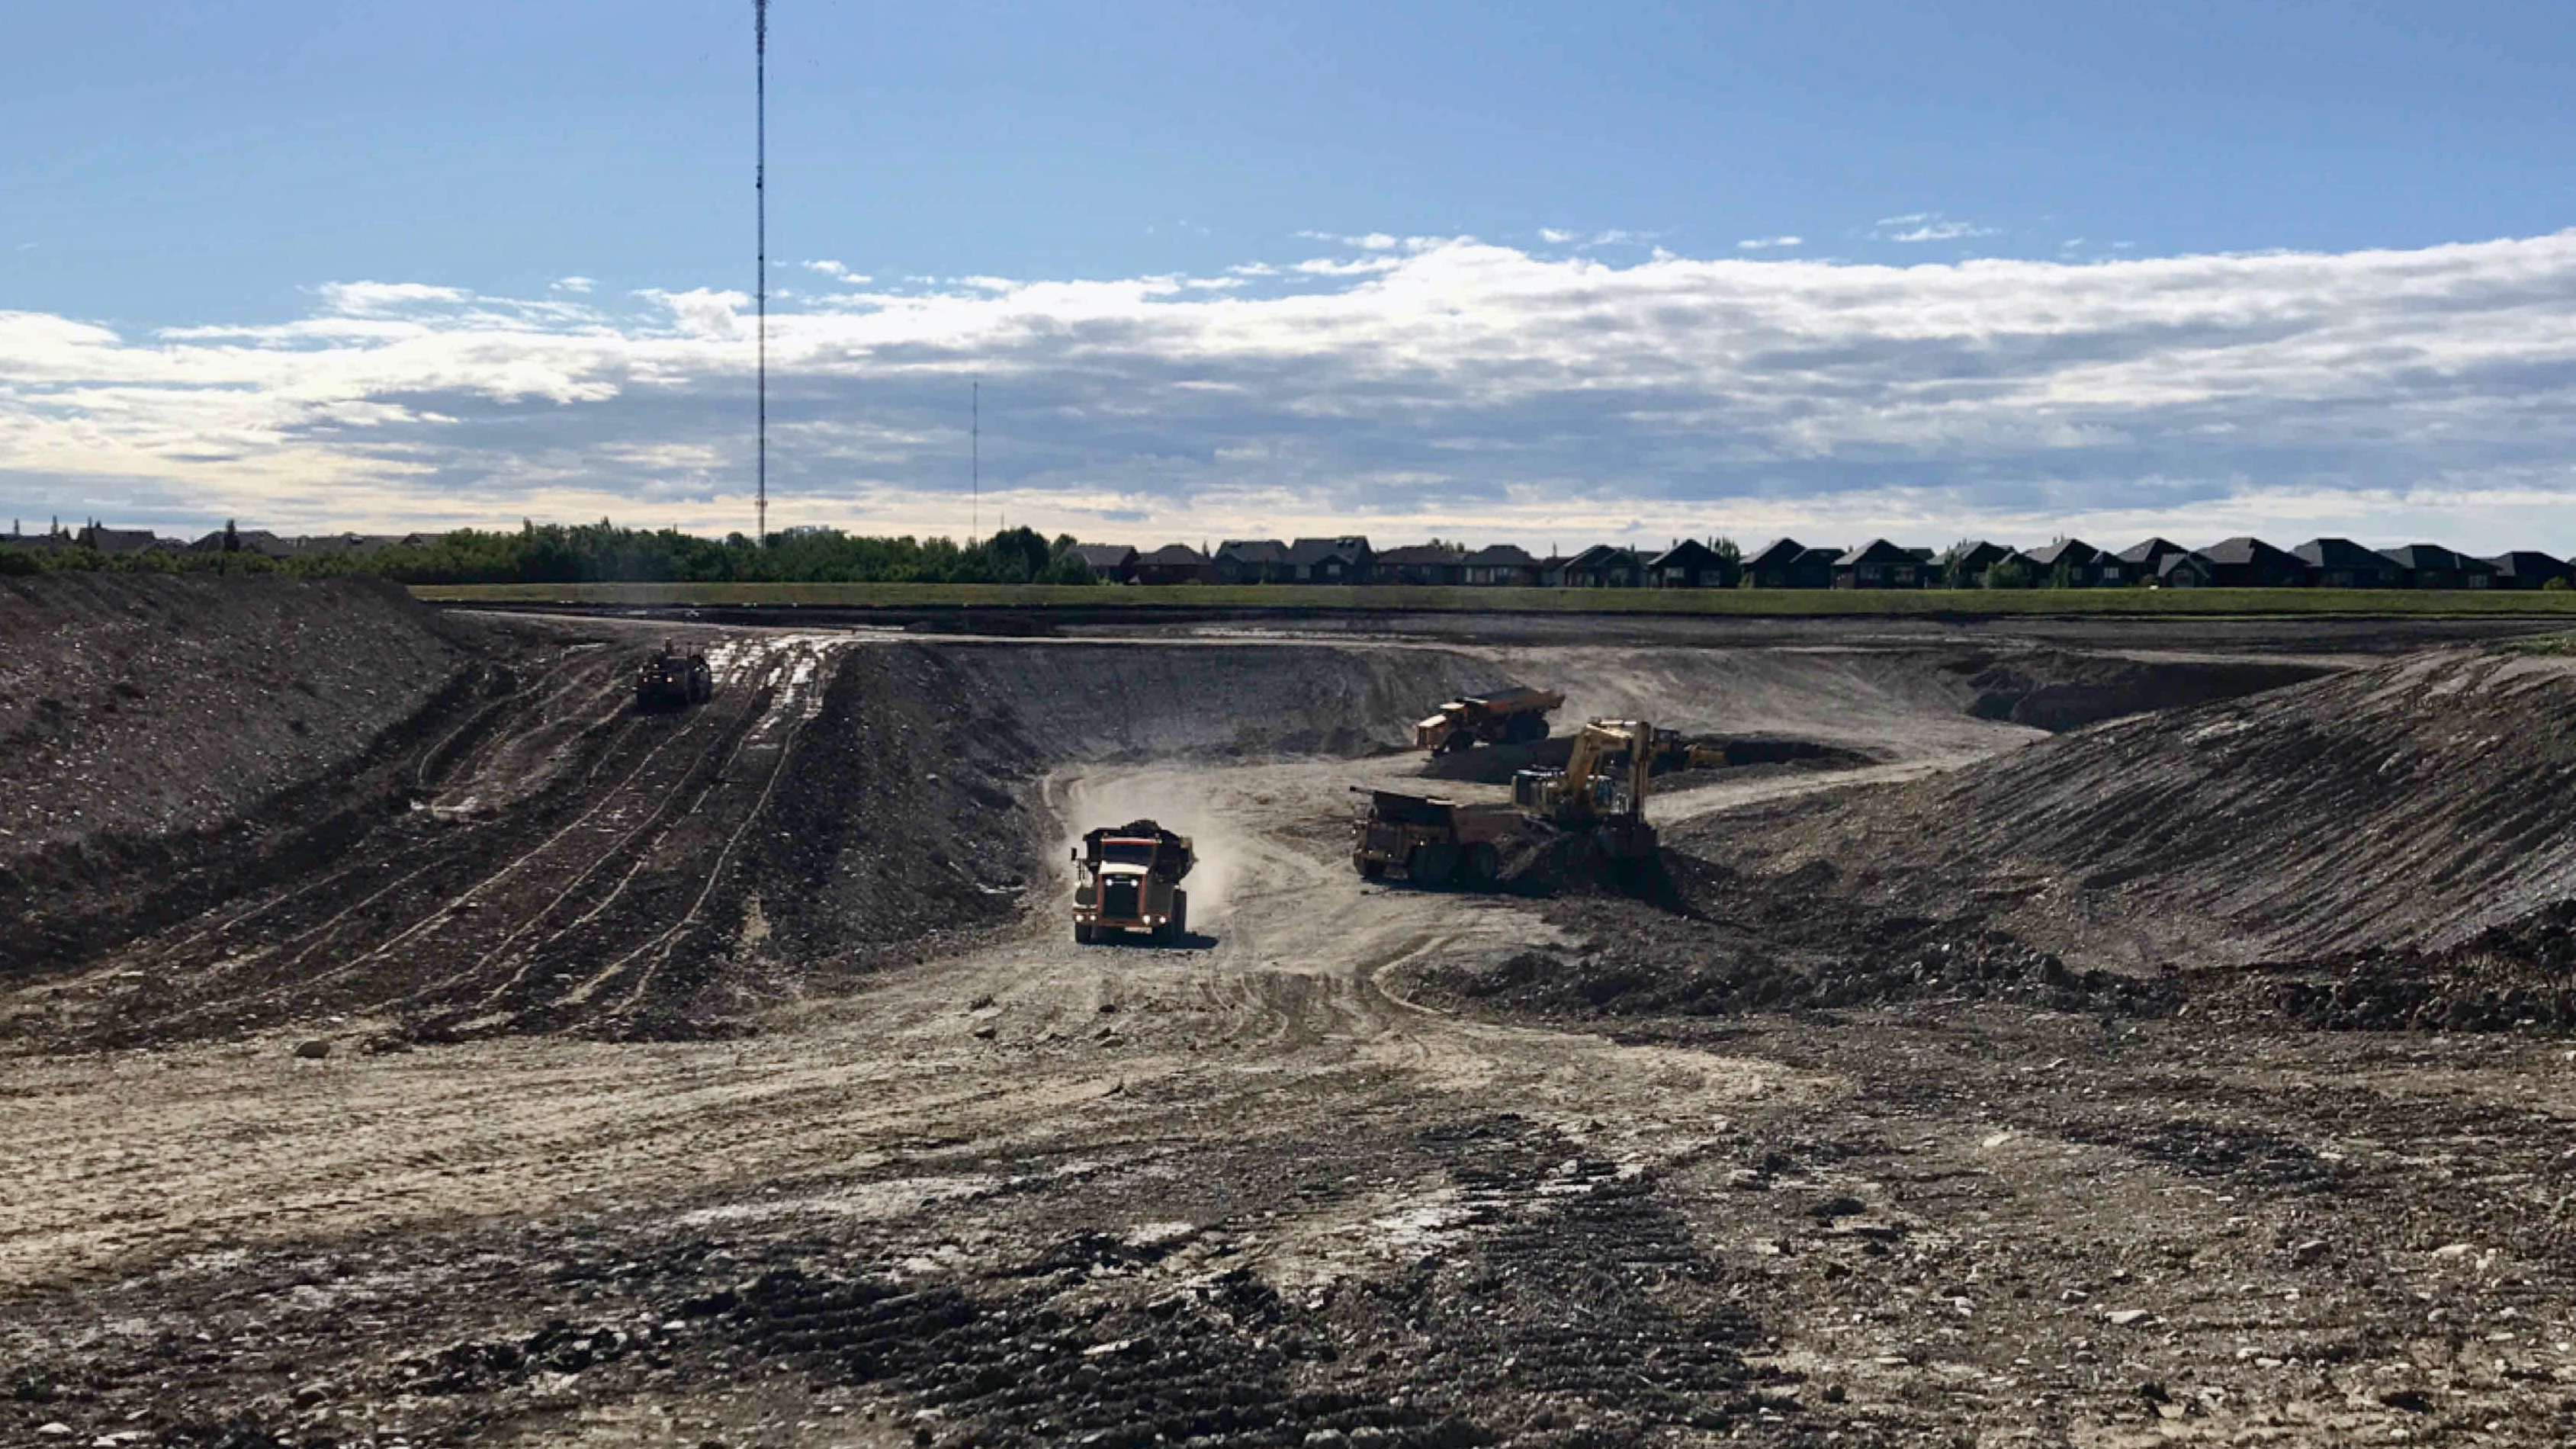 Gravel extraction July 13